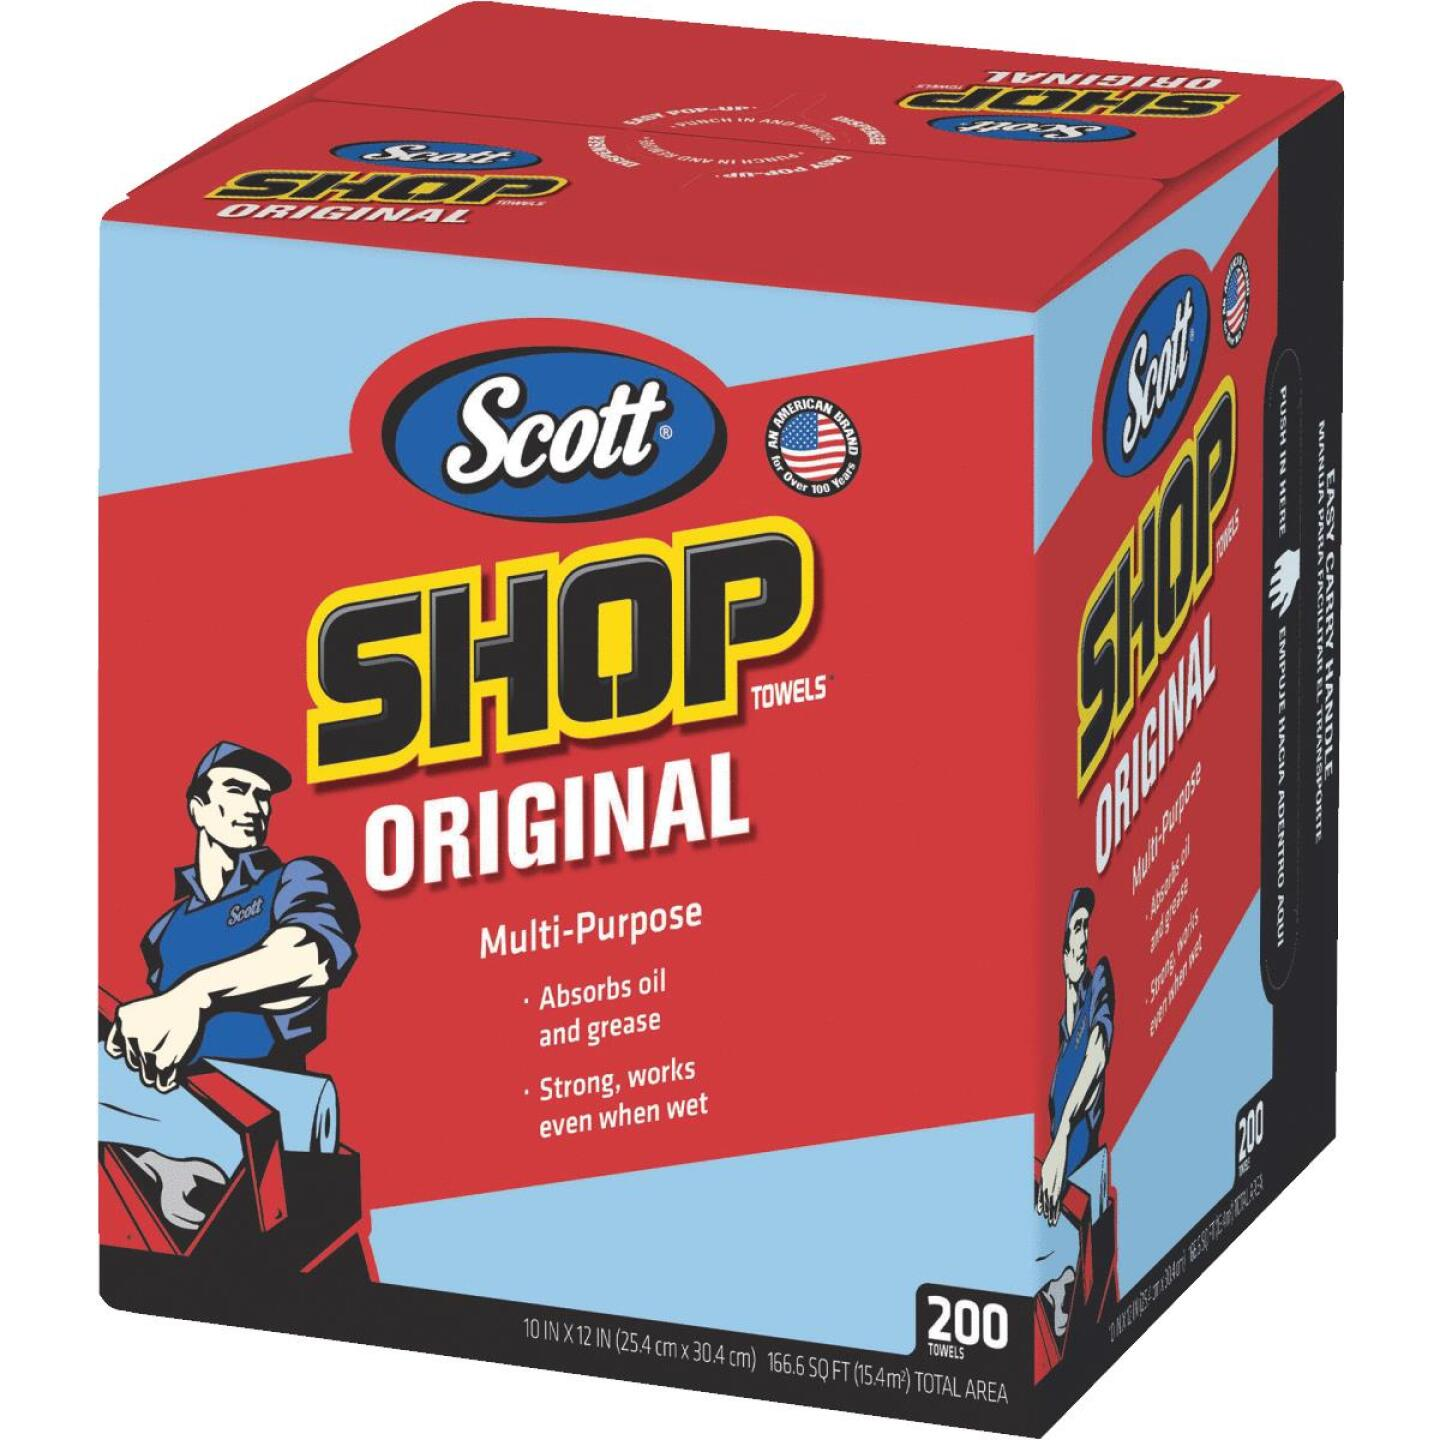 Scott 13 In. W x 10 In. L Disposable Original Shop Towel (200-Sheets) Image 1